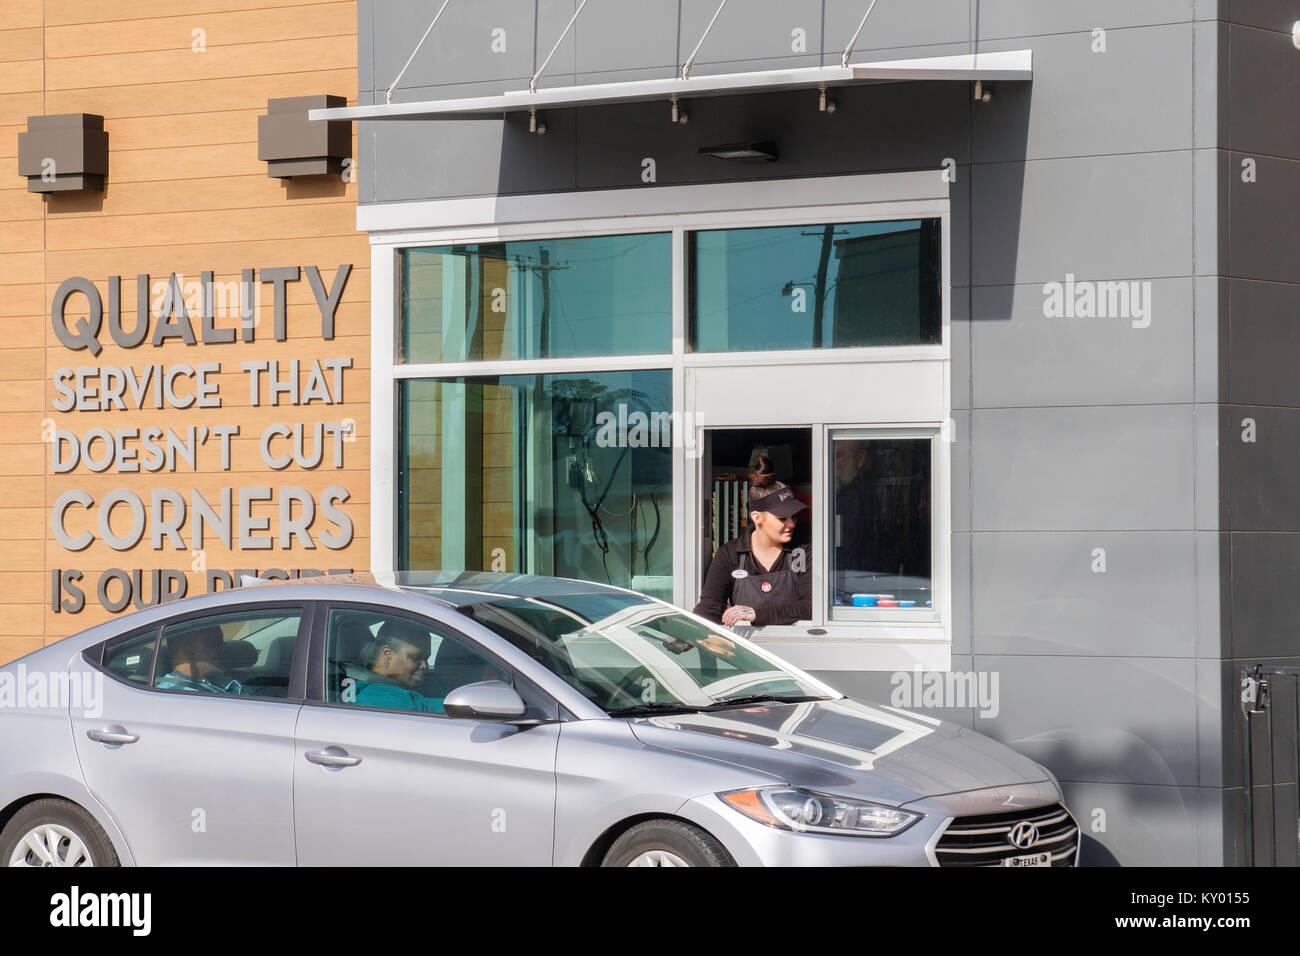 Grand opening Wendy's restaurant pickup window with employee servicing a customer. Oklahoma City, Oklahoma, - Stock Image